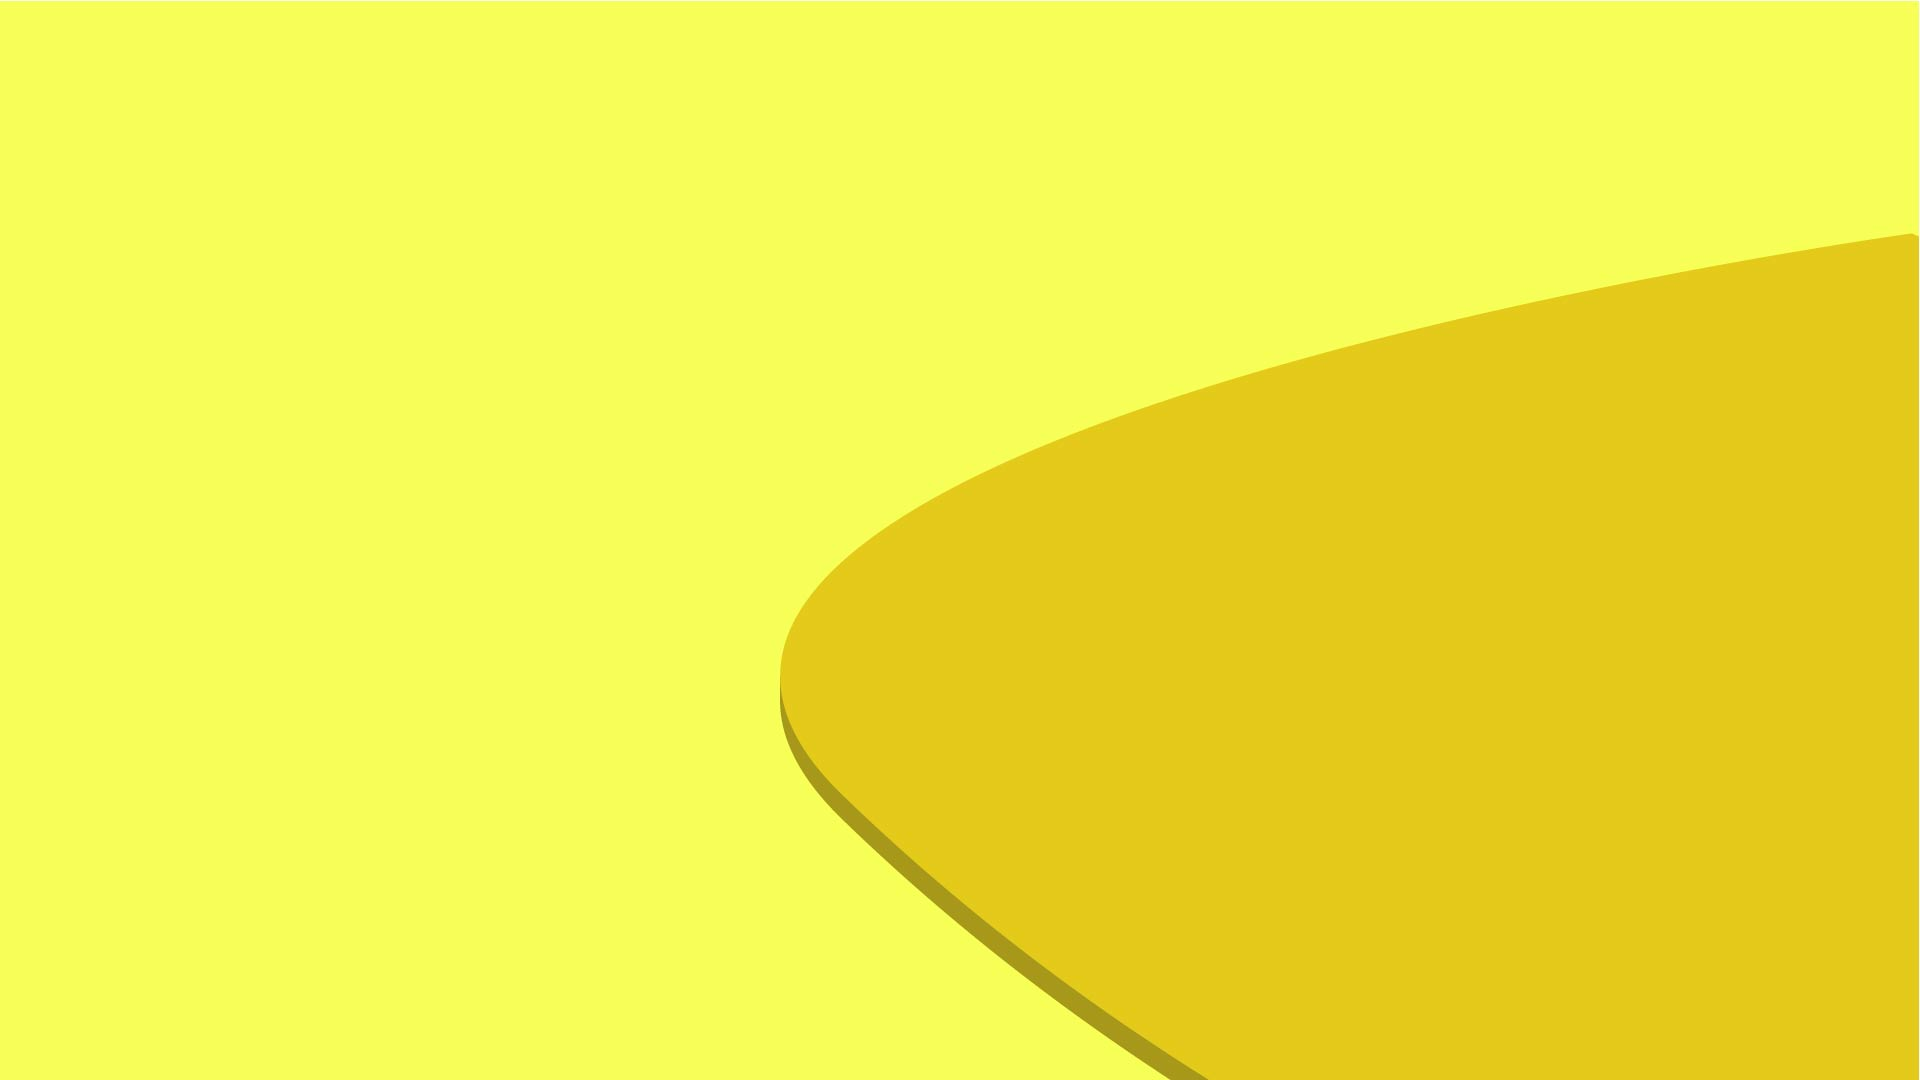 Simple Light Yellow Background